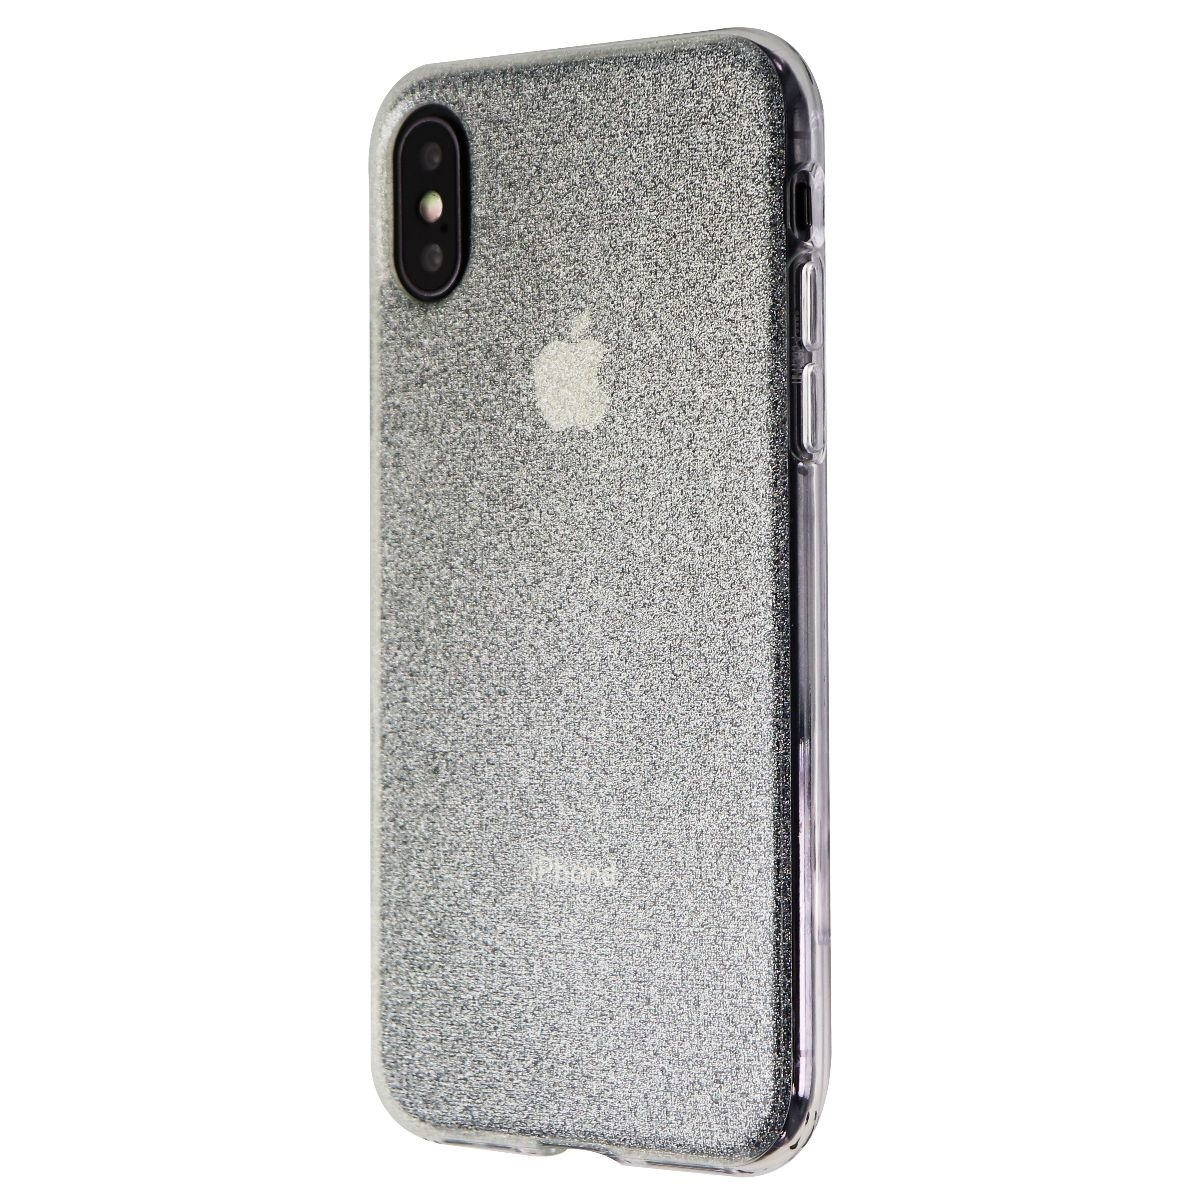 Incipio Design Series Case for Apple iPhone XS / X - Iridescent White Glitter